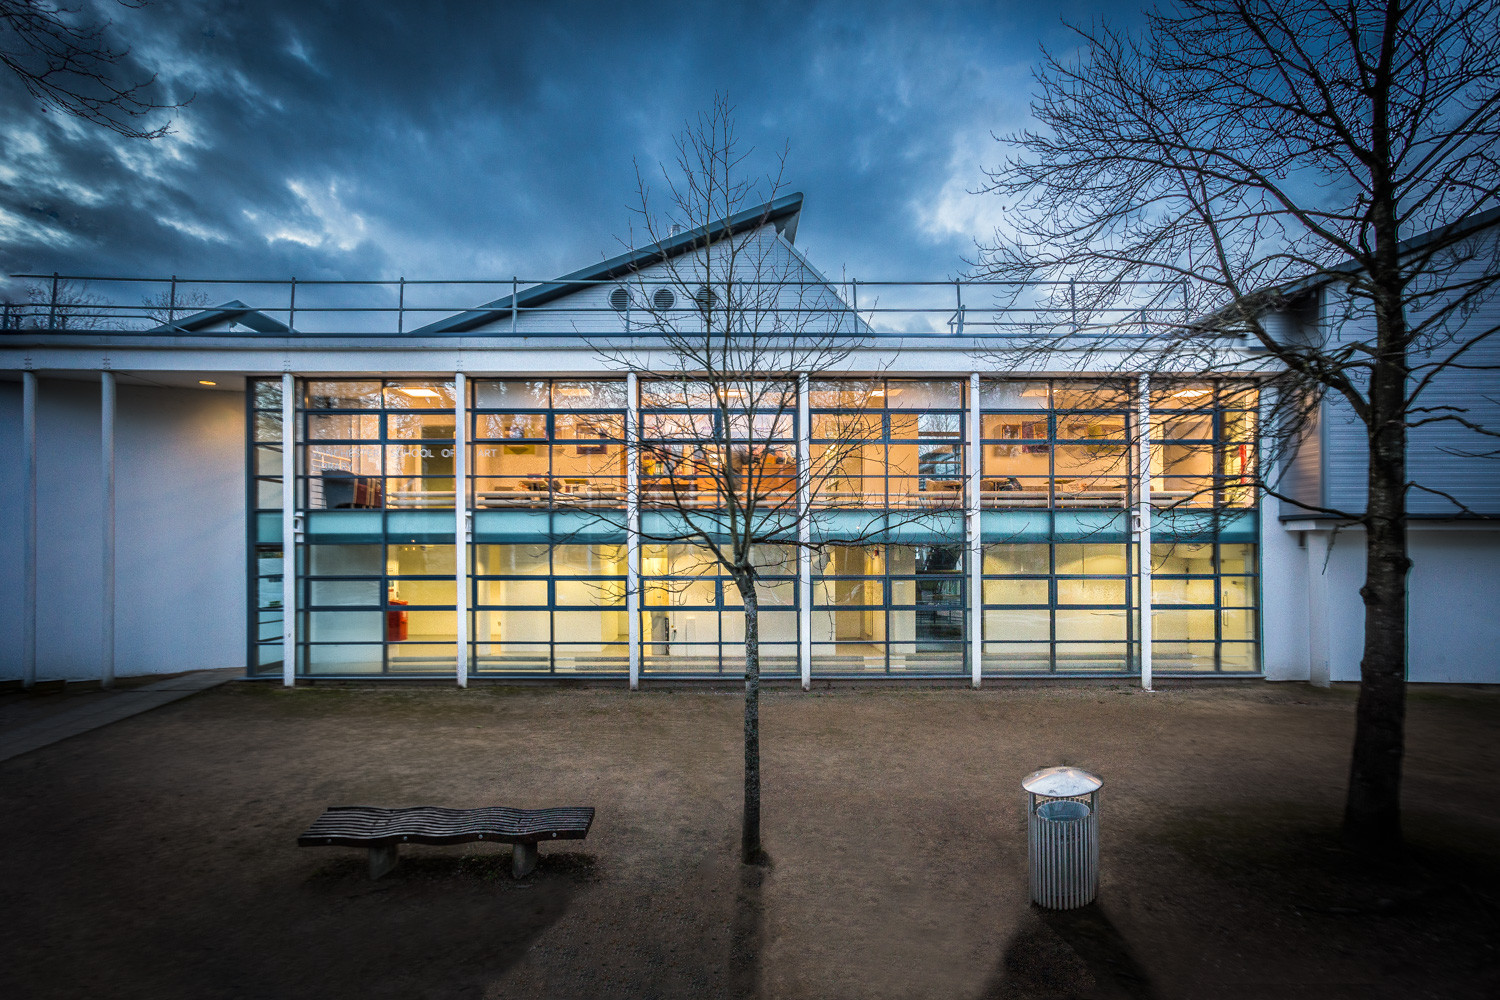 Winchester School of Art by architectural photographer Rick McEvoy